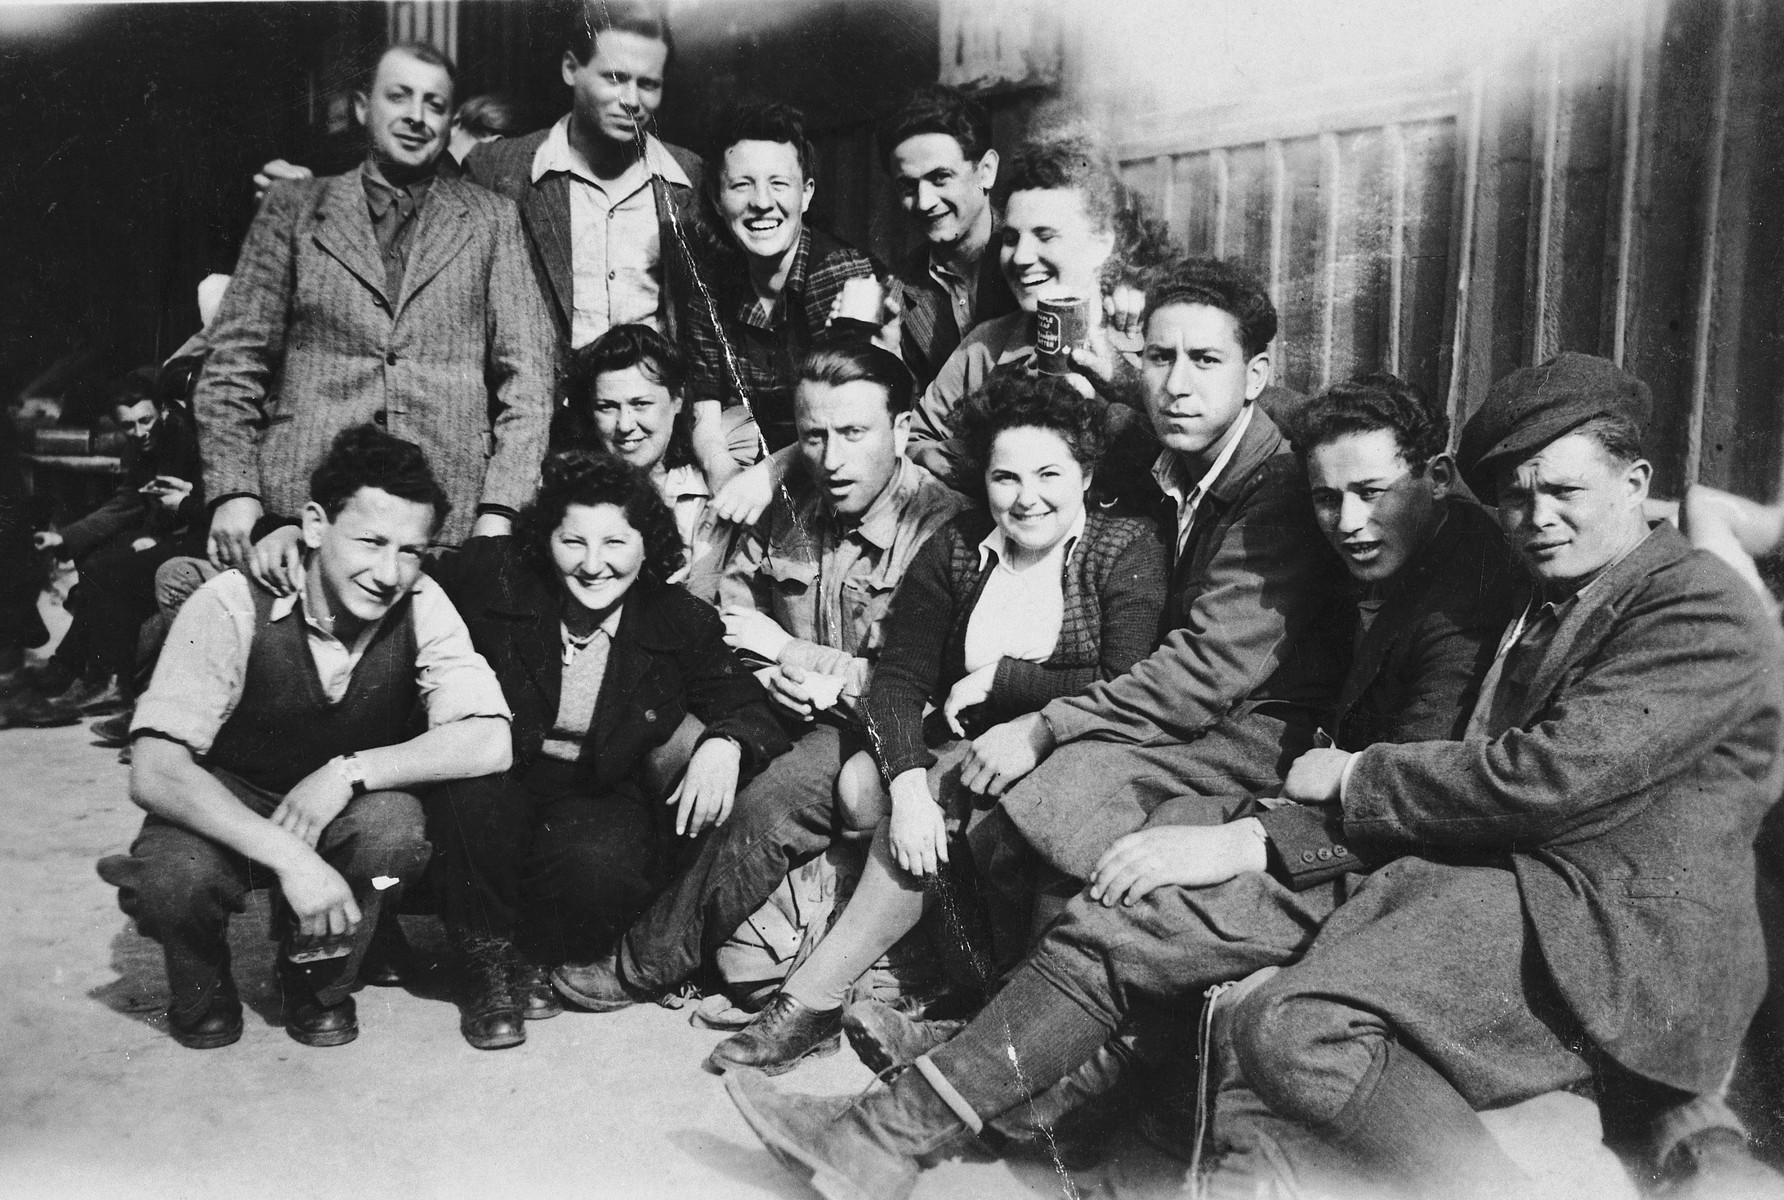 Group portrait of young Jewish DPs who are seeking to immigrate to Palestine illegally, at a way station near the Italian border.  They await permission to cross the border and transport into Italy.  Seated in the front row from left to right are: Moniek Szeps, Goldi Silberstein, Levi Danielski, unknown, Meni Szmulewicz, Mendel Ingber and Tesler; in the second row, from left to right are: Zlotnik, Arik Ofner, Hana, Mojszale Wyszogrodzki, Haja Danielski; seated above Goldi Silberstein is Hana Ingber.